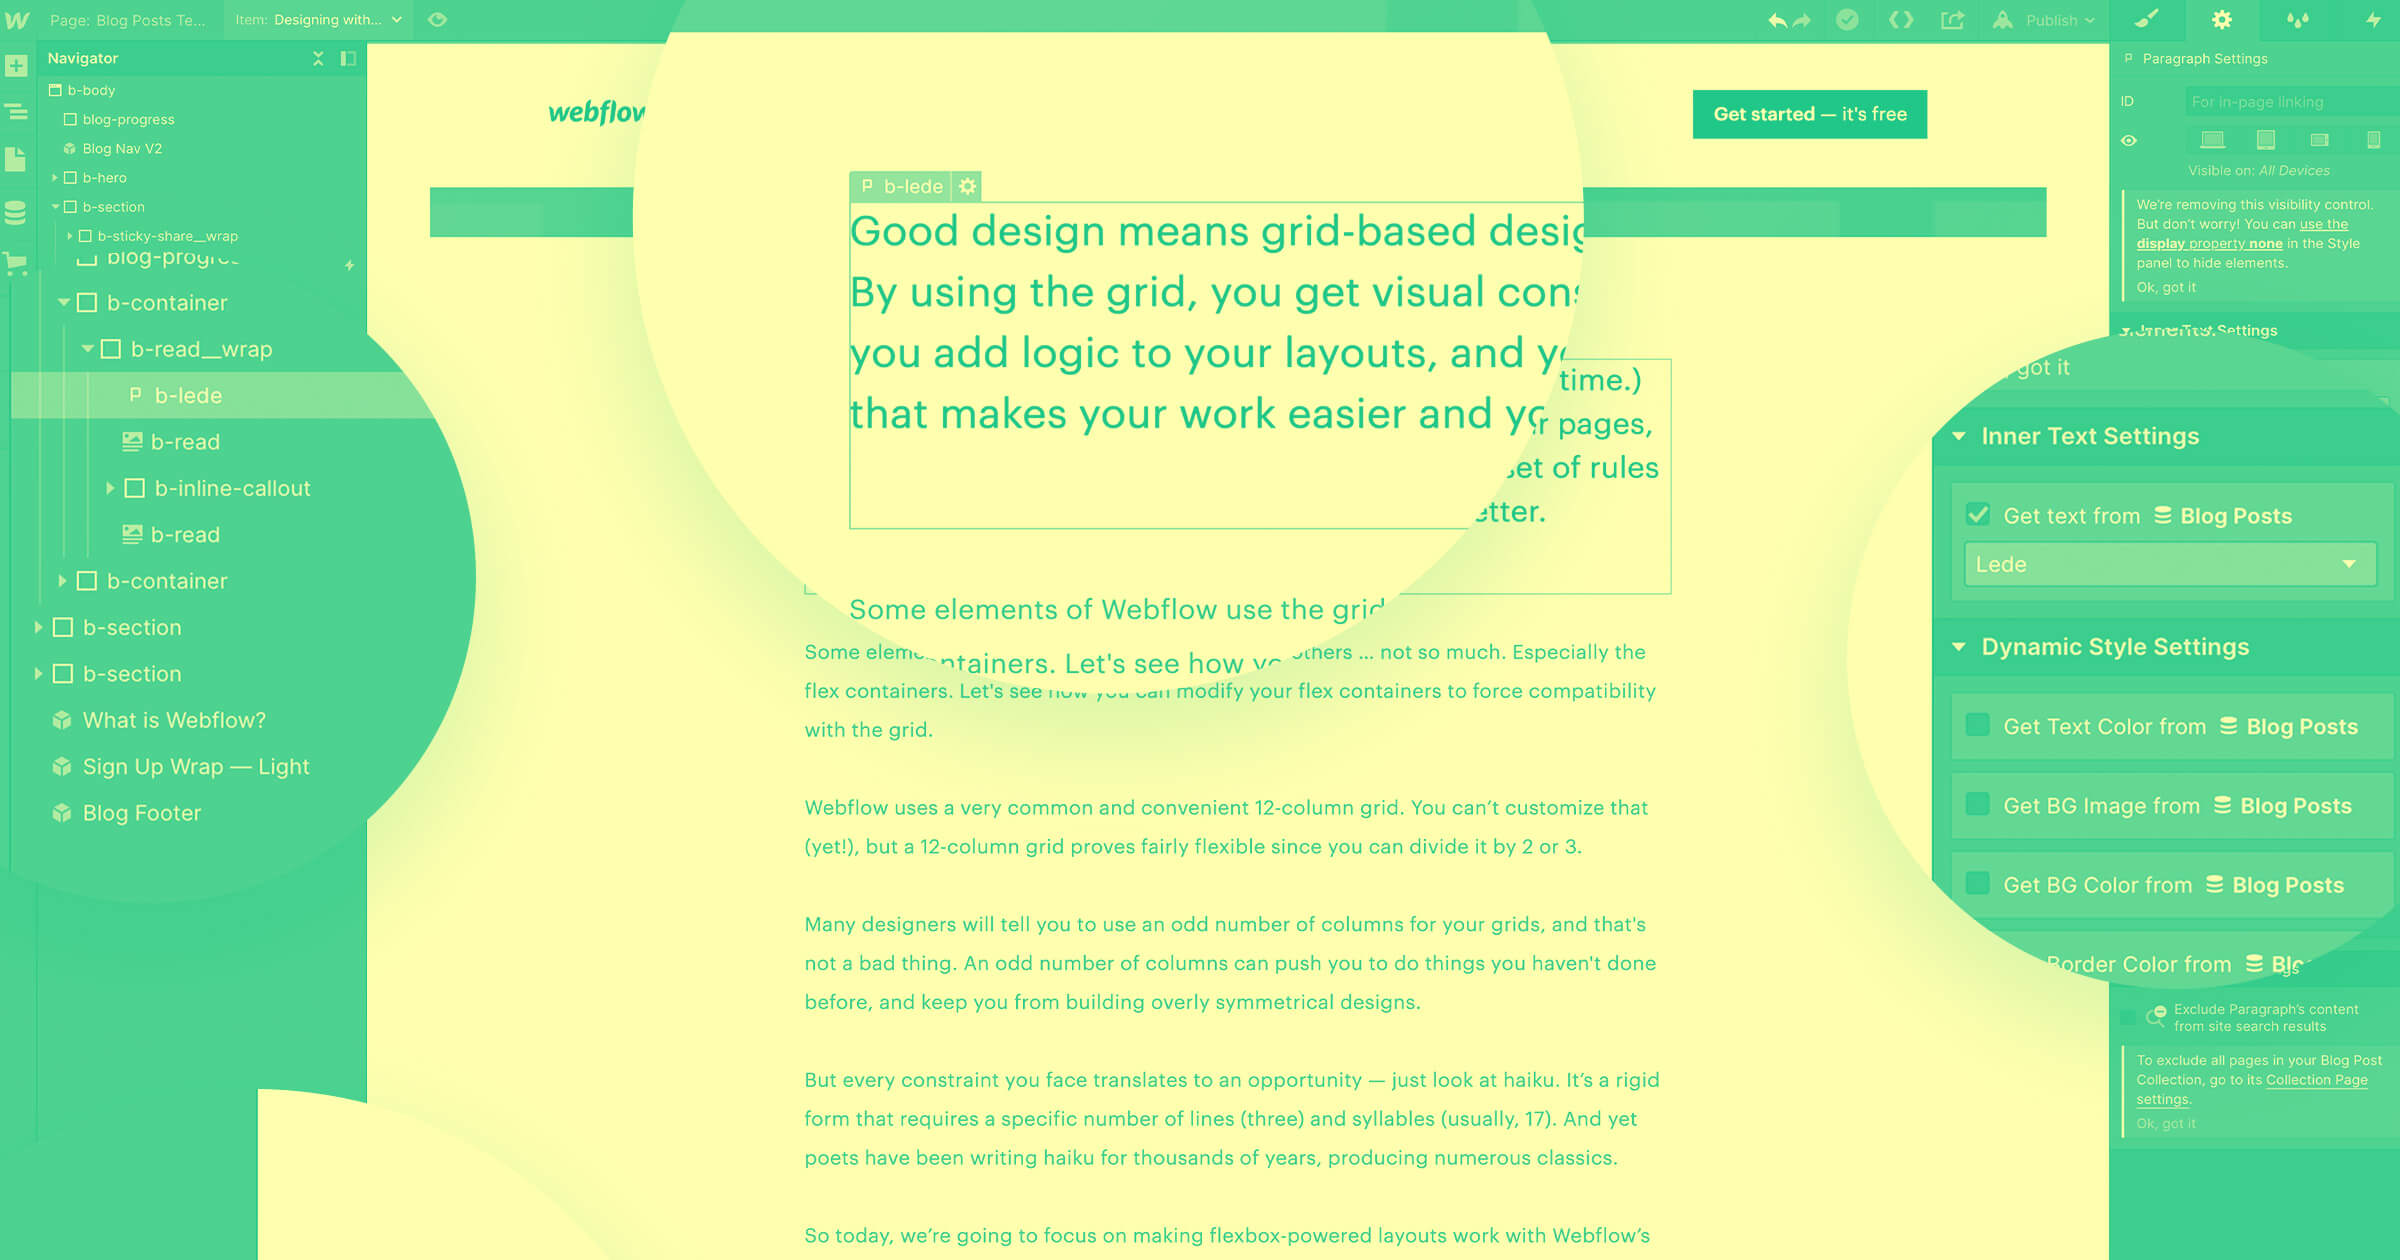 Webflow for blogging: 4 steps to getting started